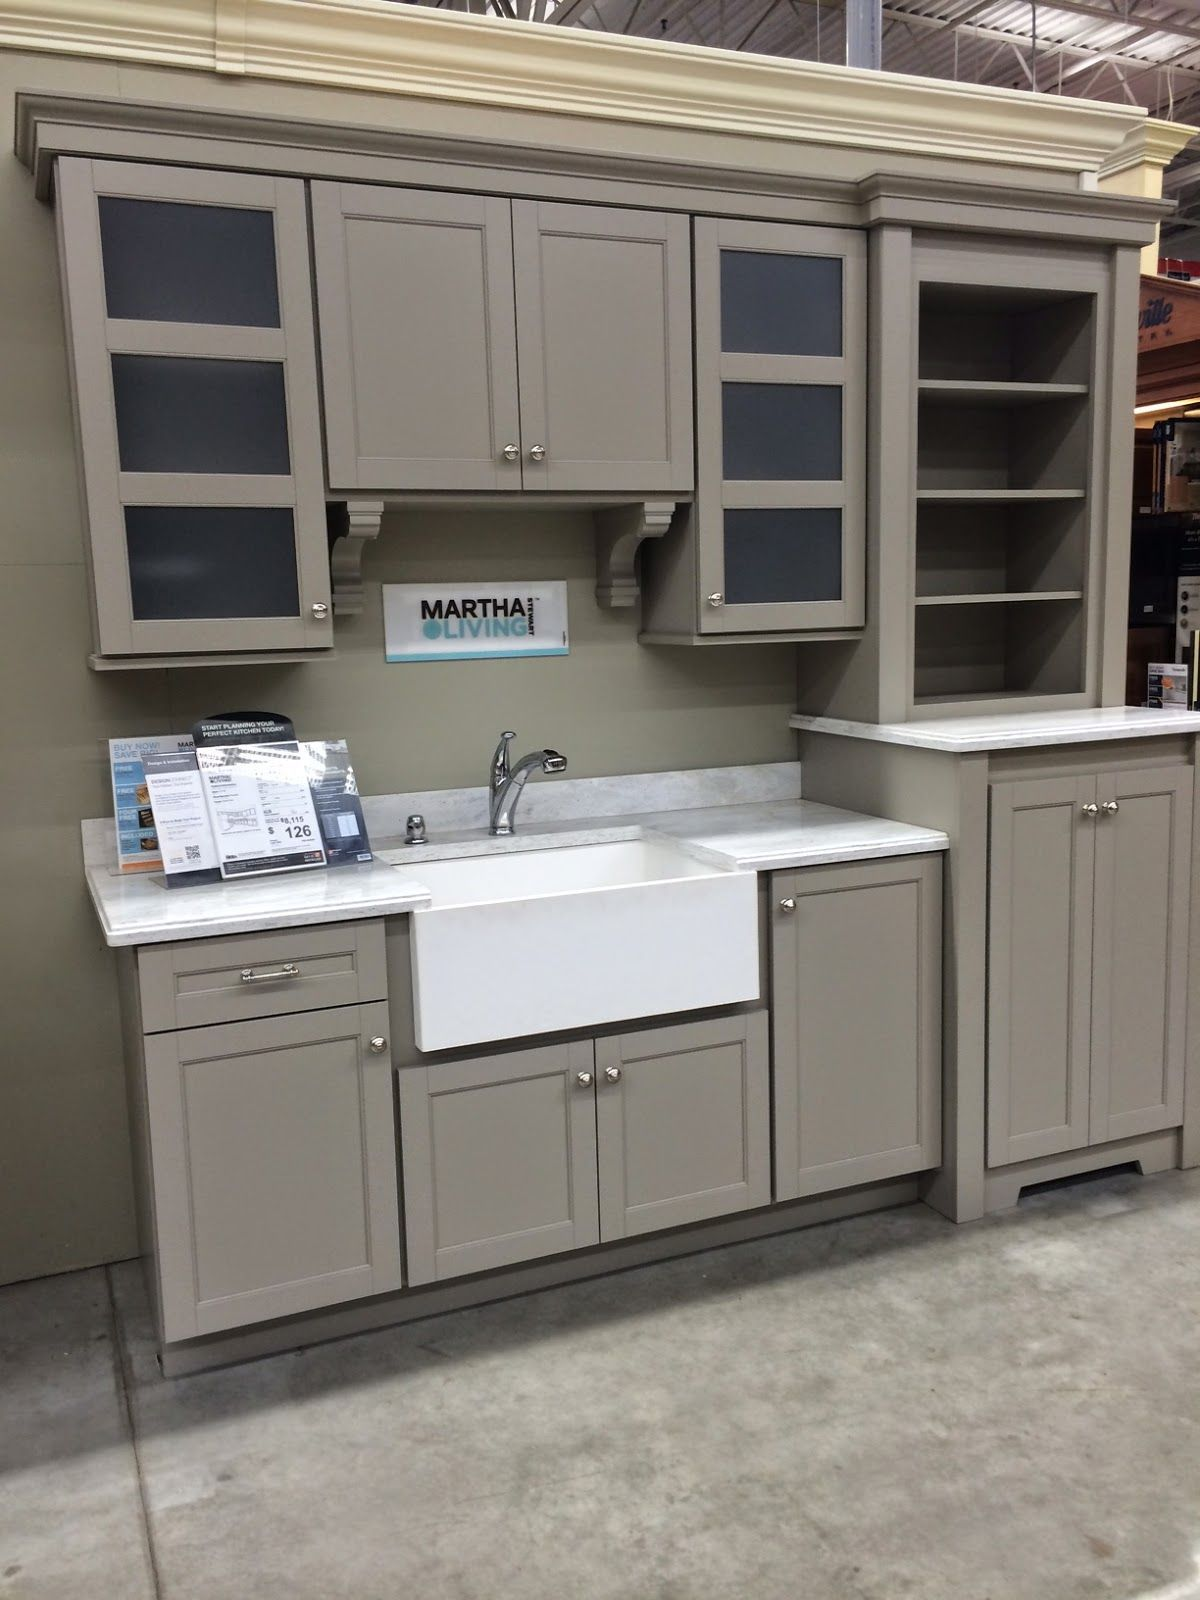 Pvc Kitchen Cabinets Home Depot 2021 Home Depot Kitchen Kitchen Cabinets Home Depot Kitchen Cabinets Home depot kitchen cabinet design